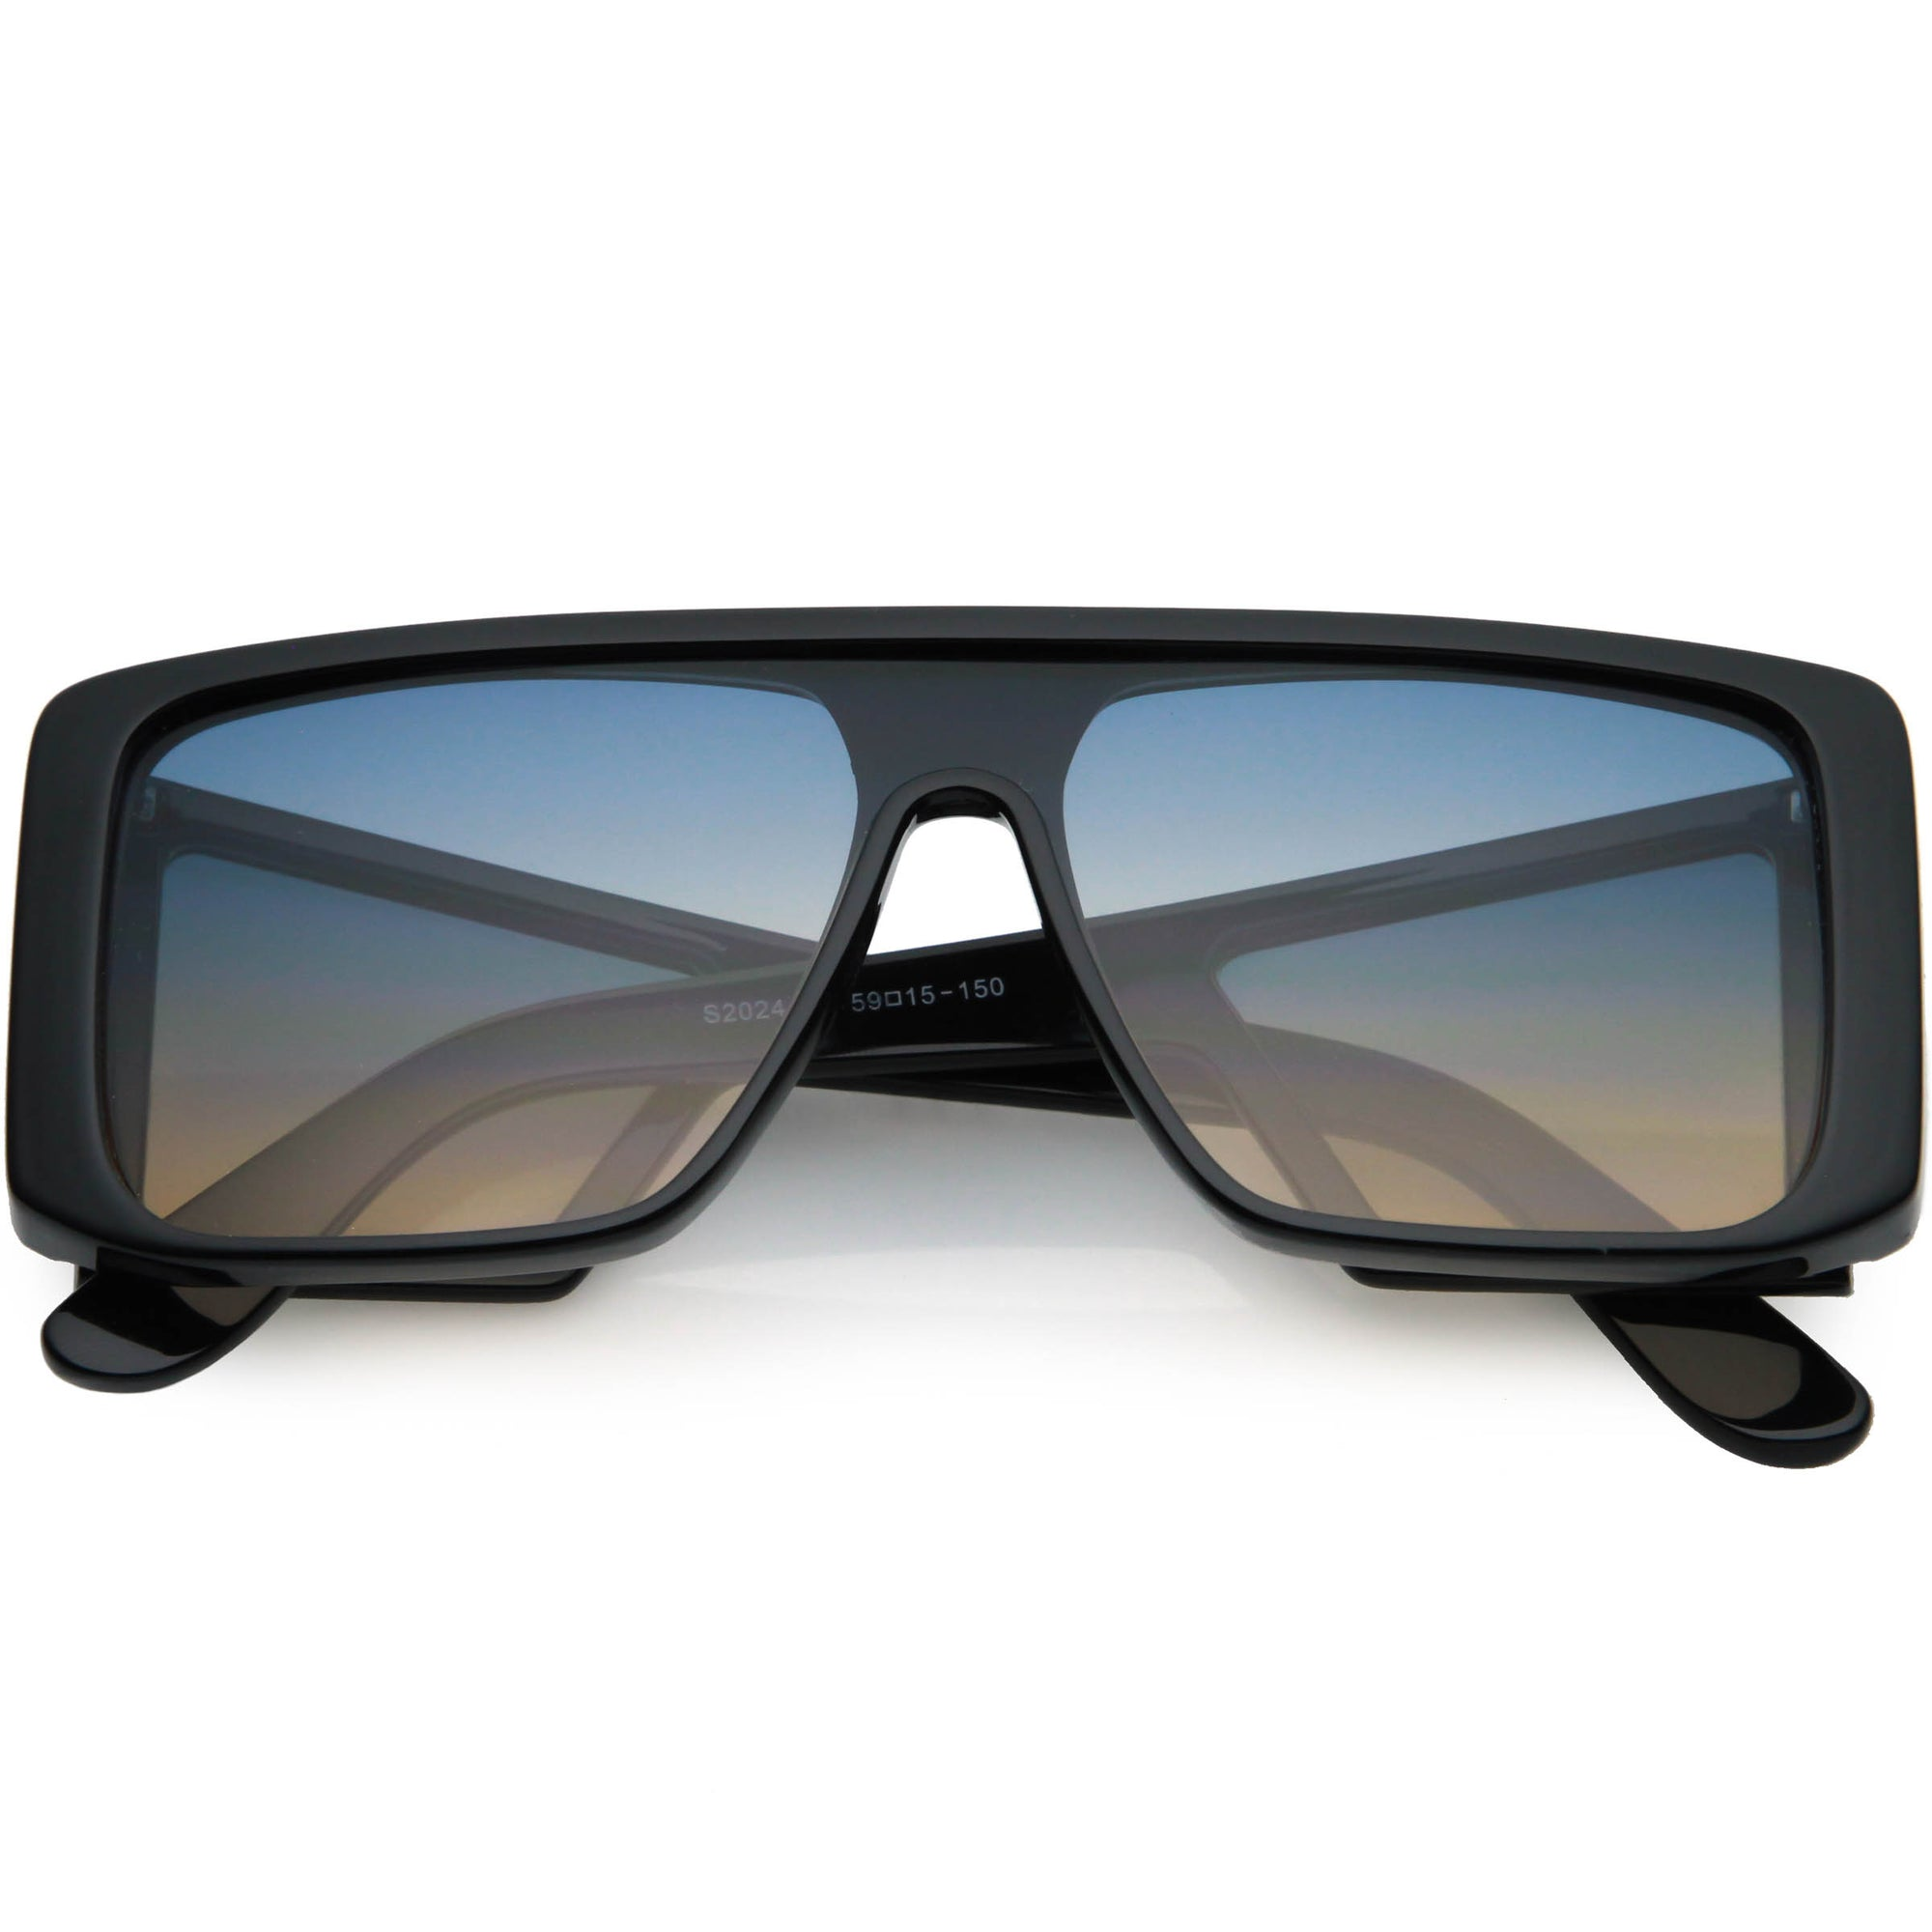 Oversize Retro Modern Square Side Window Shield Sunglasses C963